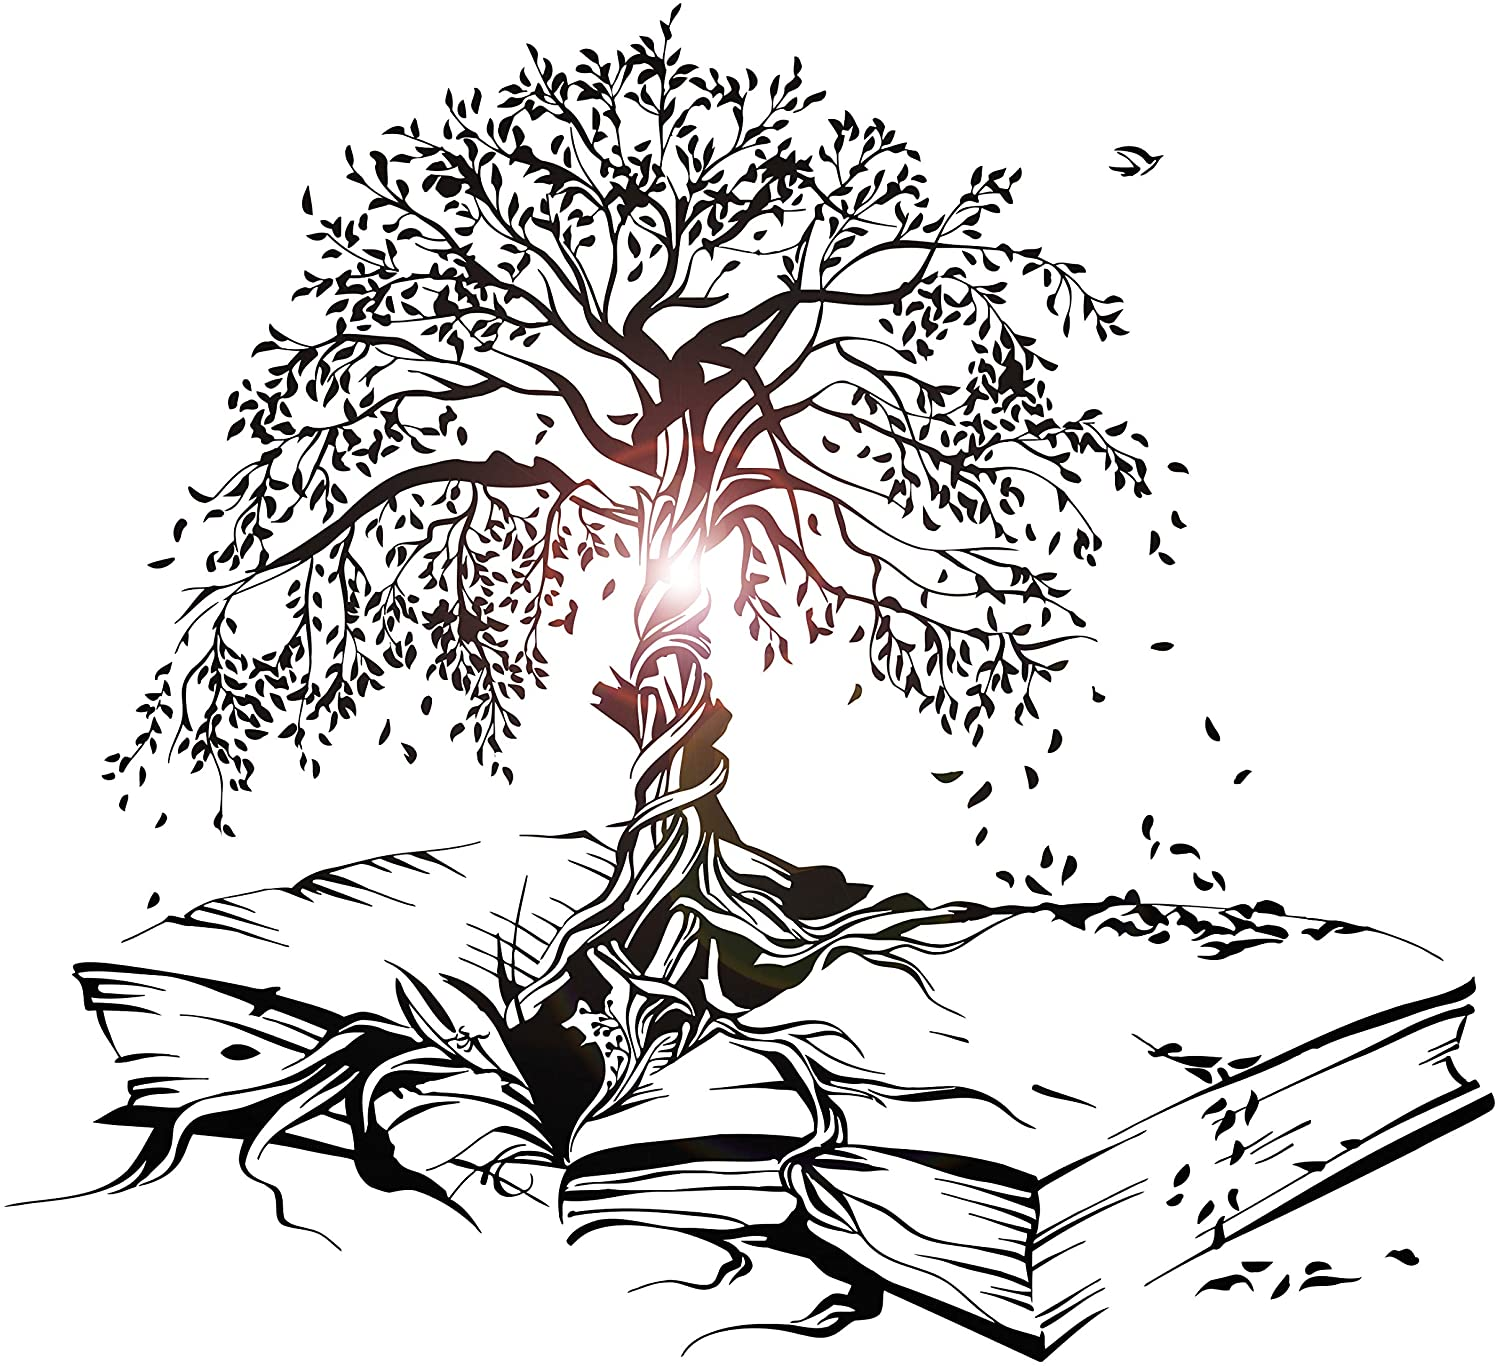 Vinyl Wall Decal Tree Book Leaves Knowledge Library Reading Room Stickers Mural Large Decor (ig5200)